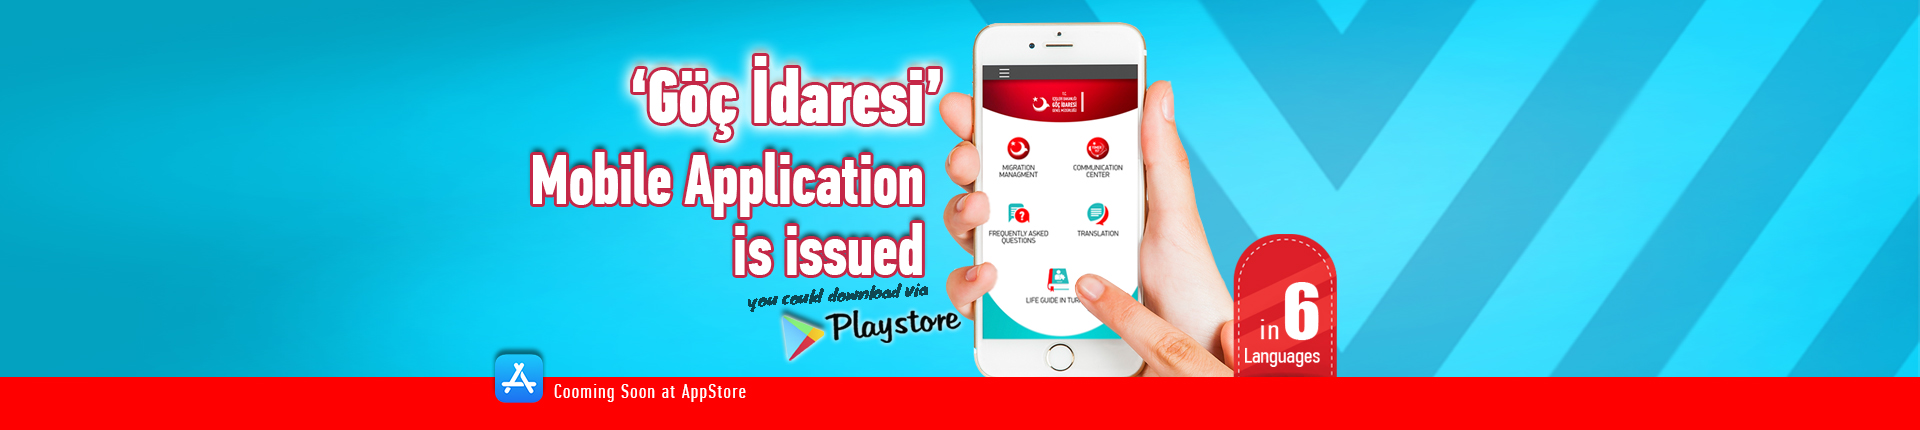 Mobil Application is issued